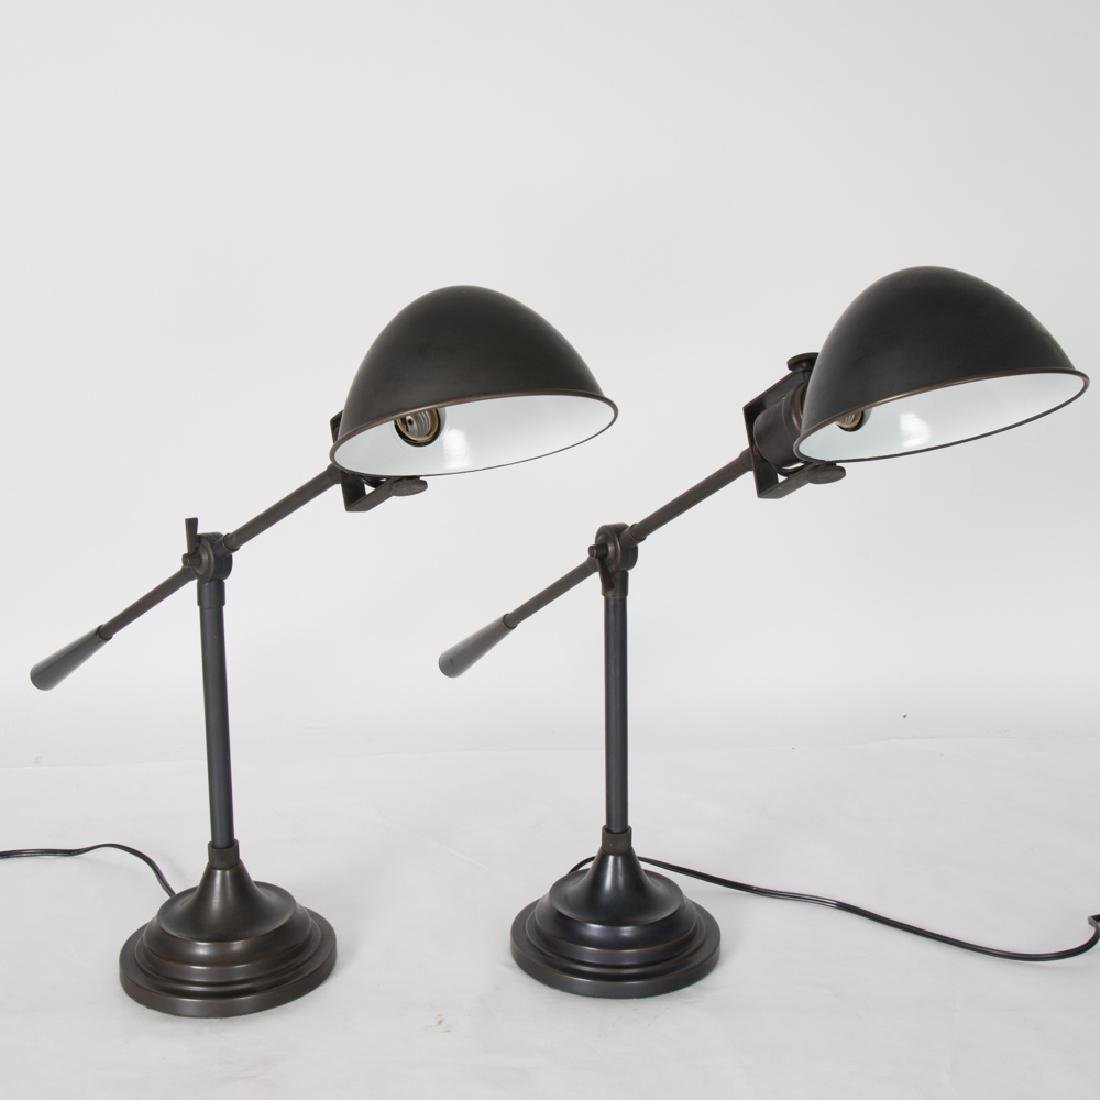 A Pair of Brass Student Lamps, 20th Century.